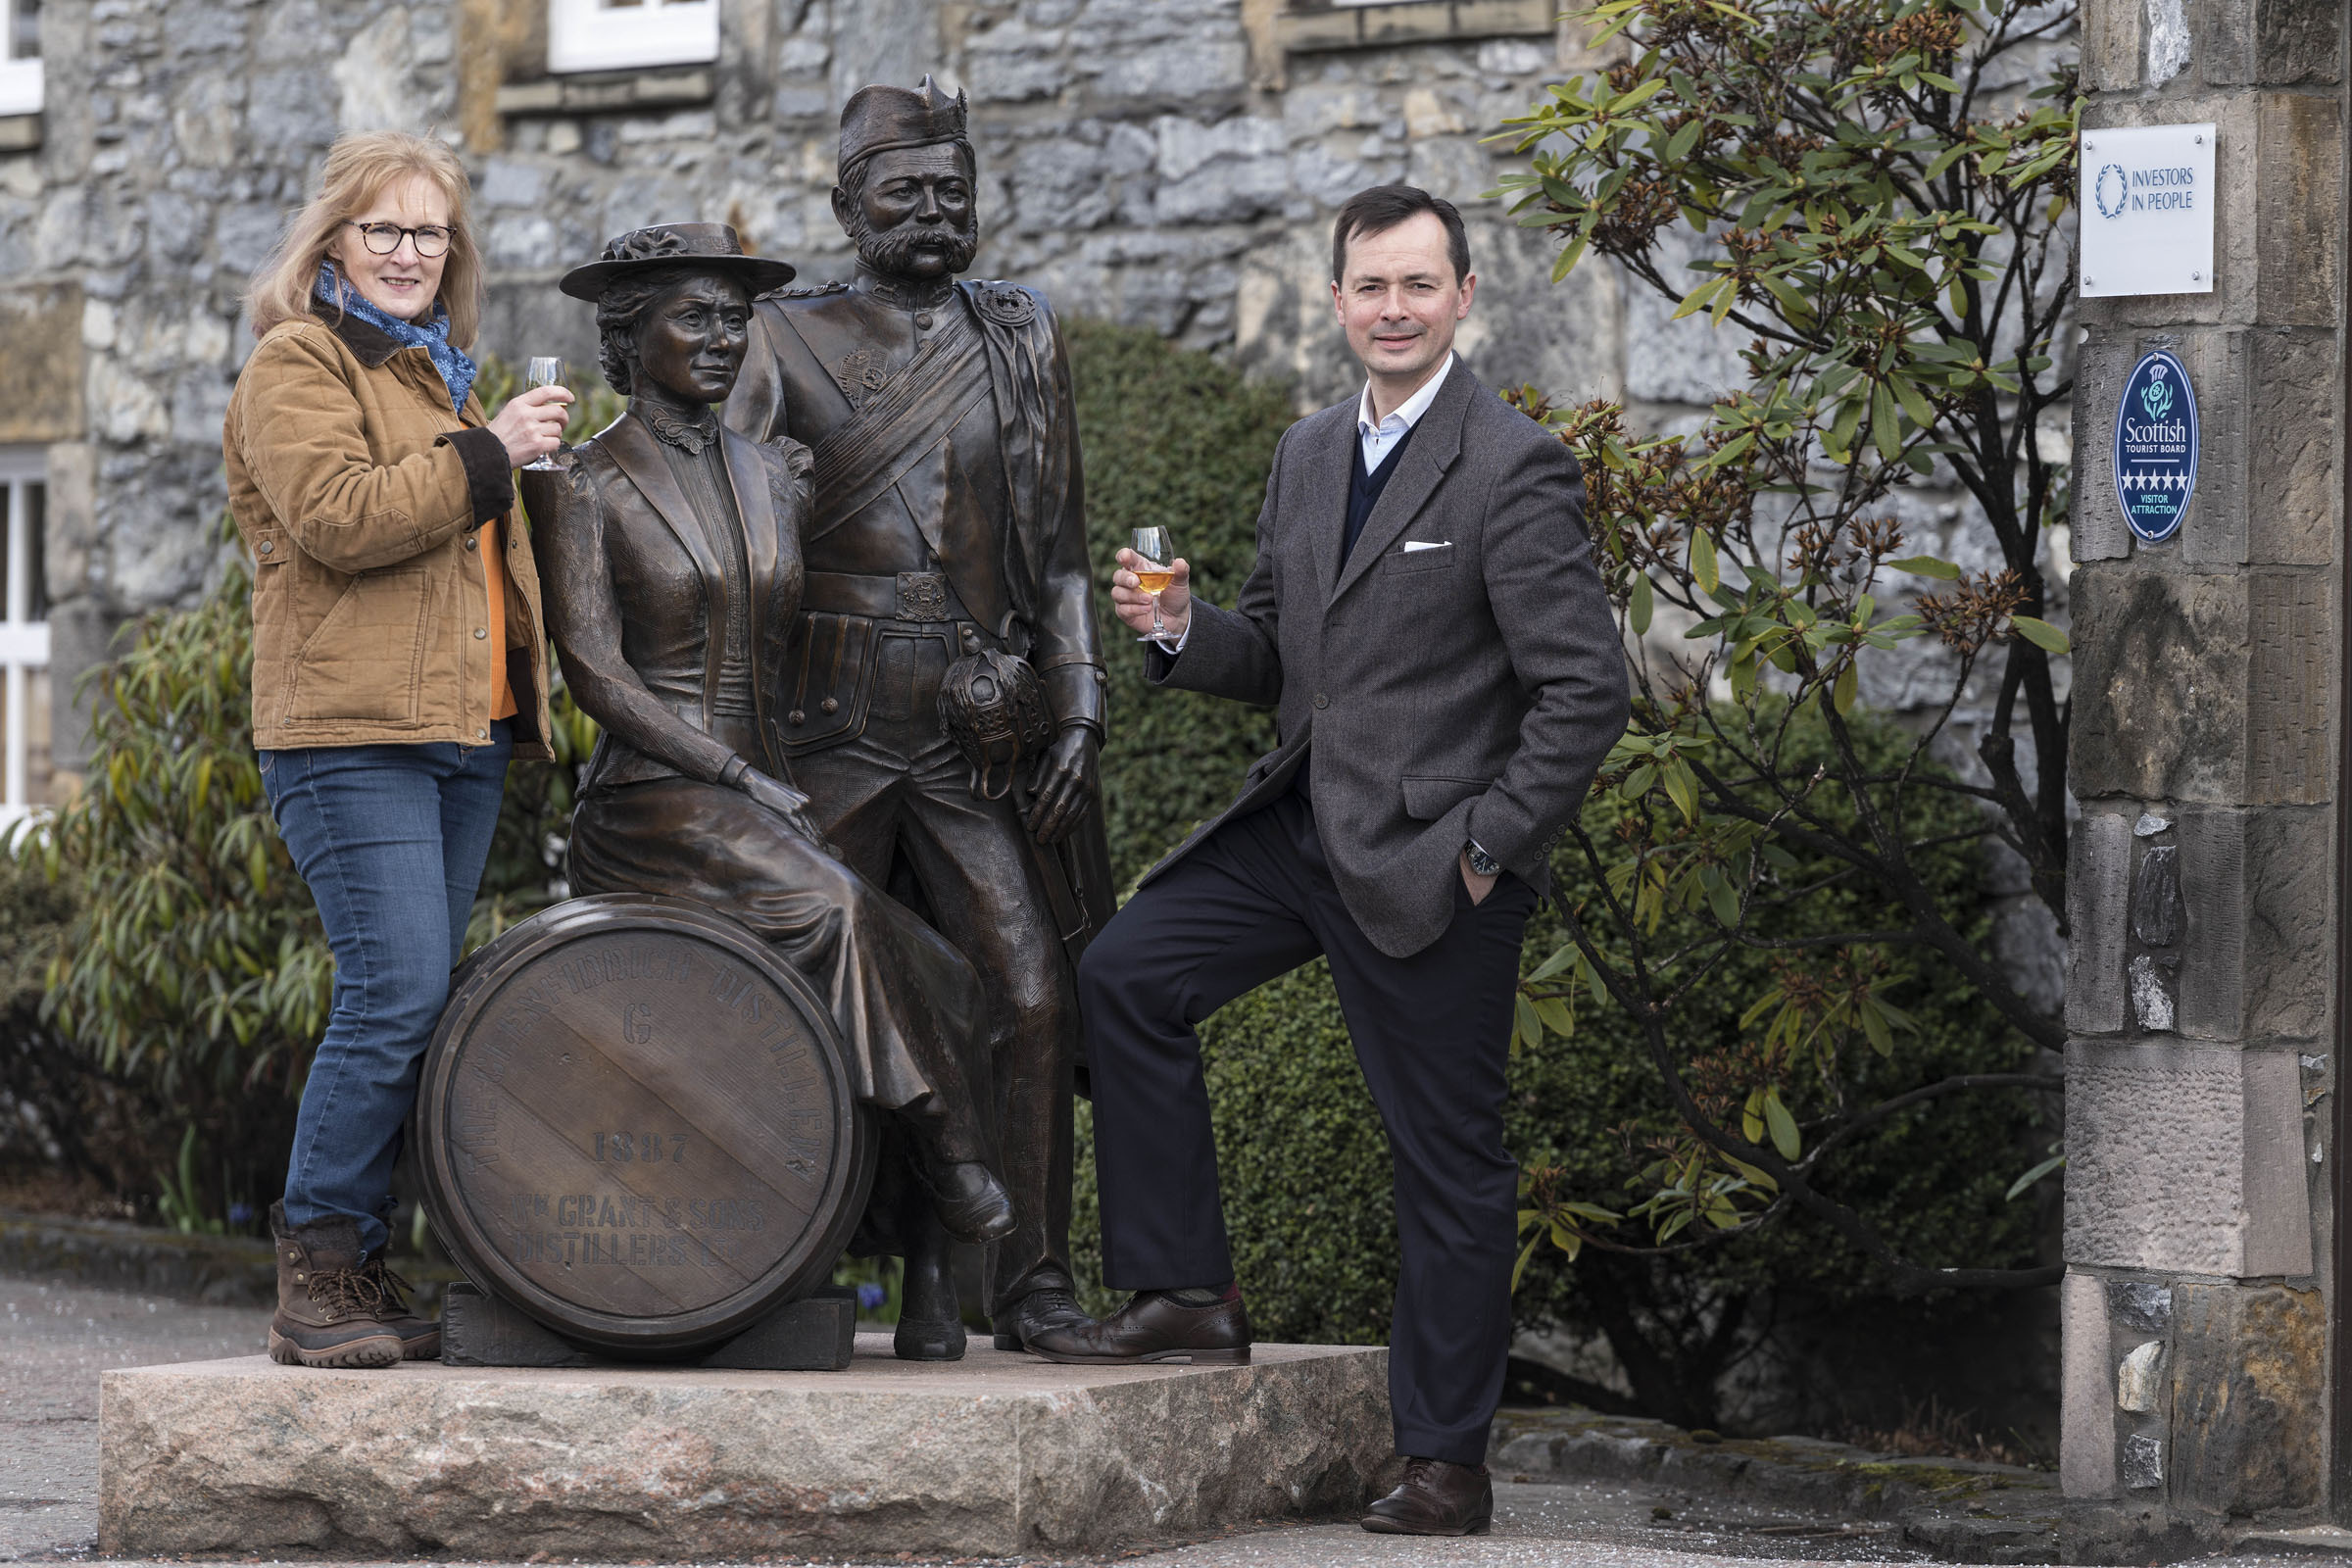 Artist Lois Carson and Peter van Peborgh-Gooch, general manager of William Grant and Sons' visitor centres, raise a glass to Glenfiddich's founders.